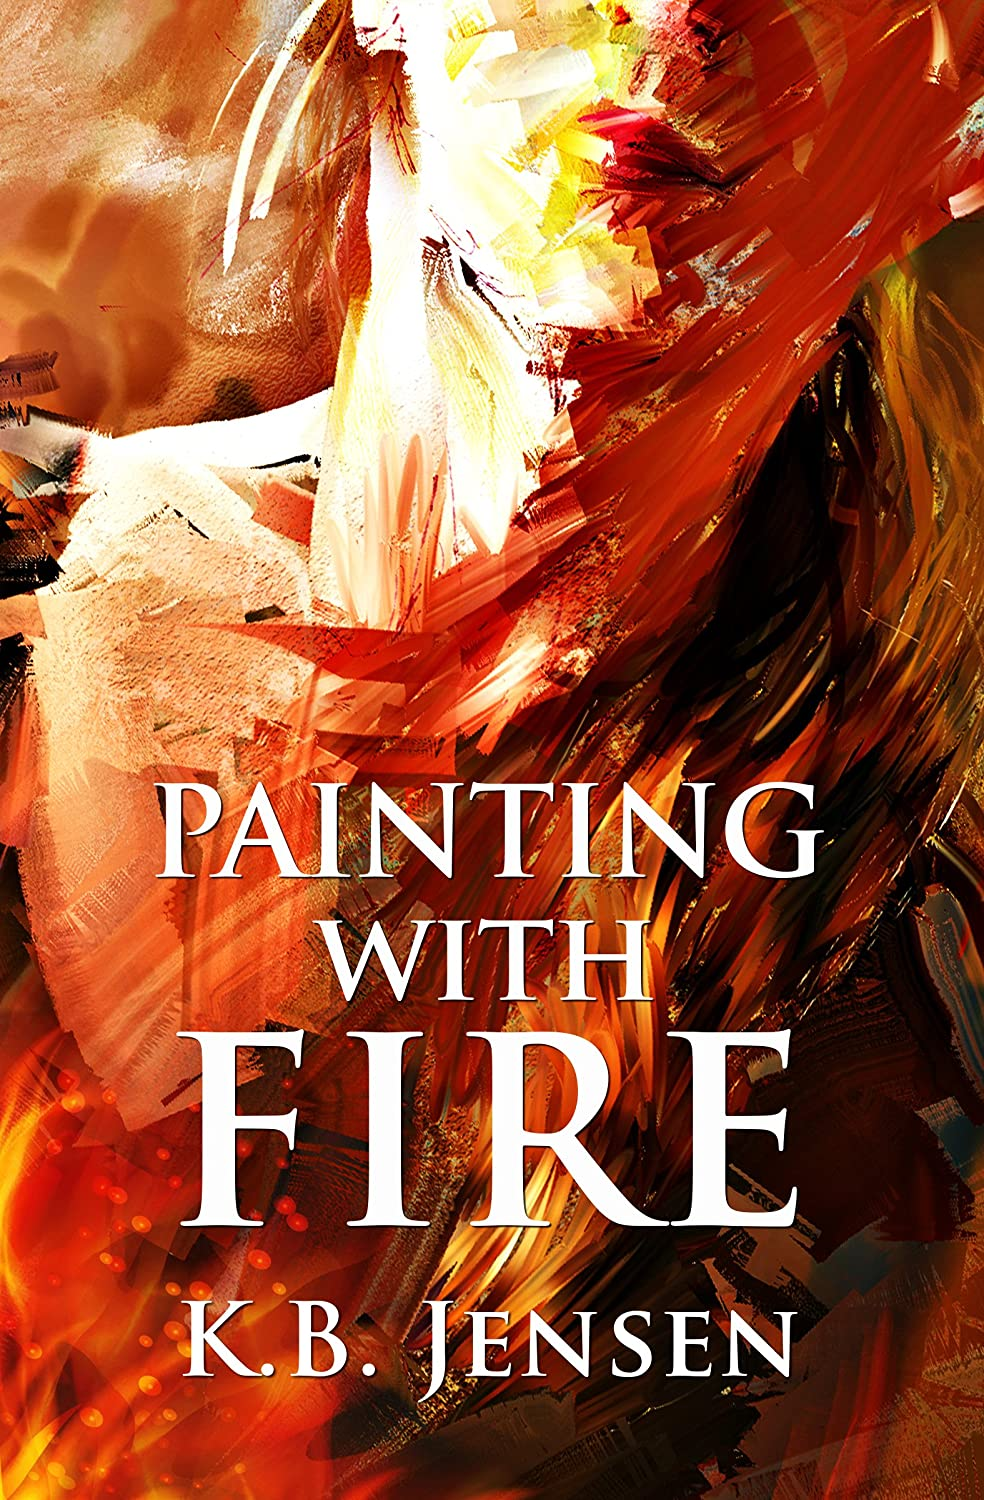 Painting With Fire: An Artistic Murder Mystery